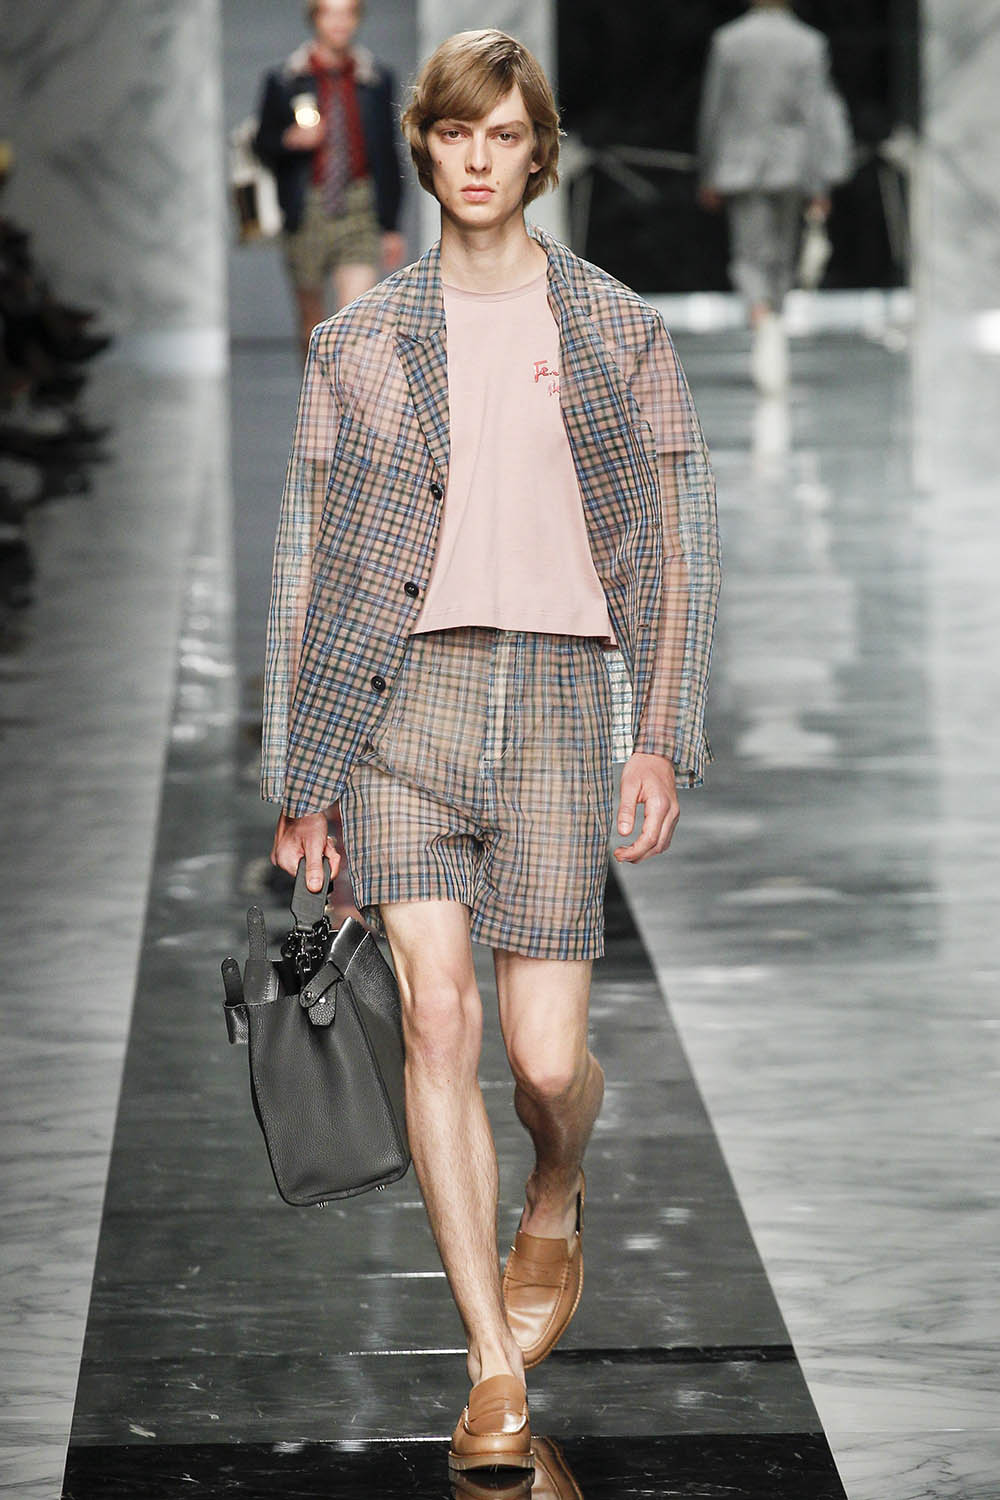 Model walking the catwalk at Fendi (by Karl Lagerfeld) SS18 men'